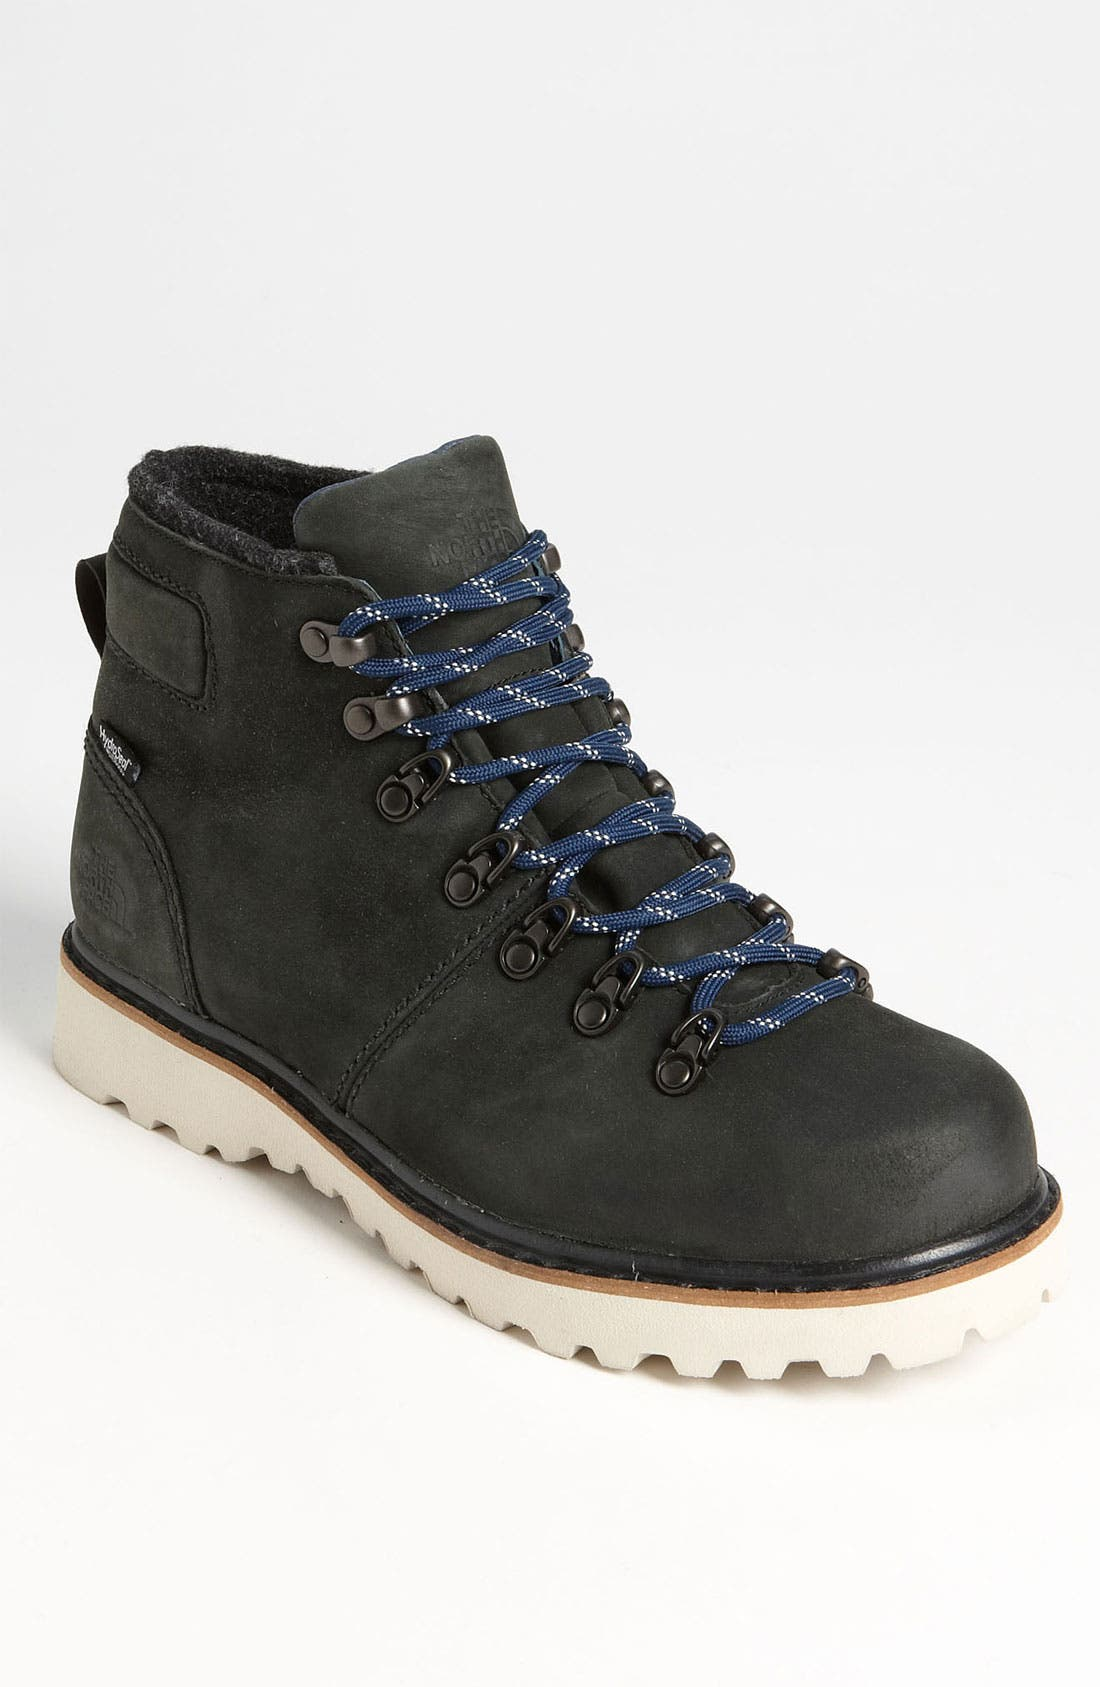 Alternate Image 1 Selected - The North Face 'Ballard' Six Inch Boot